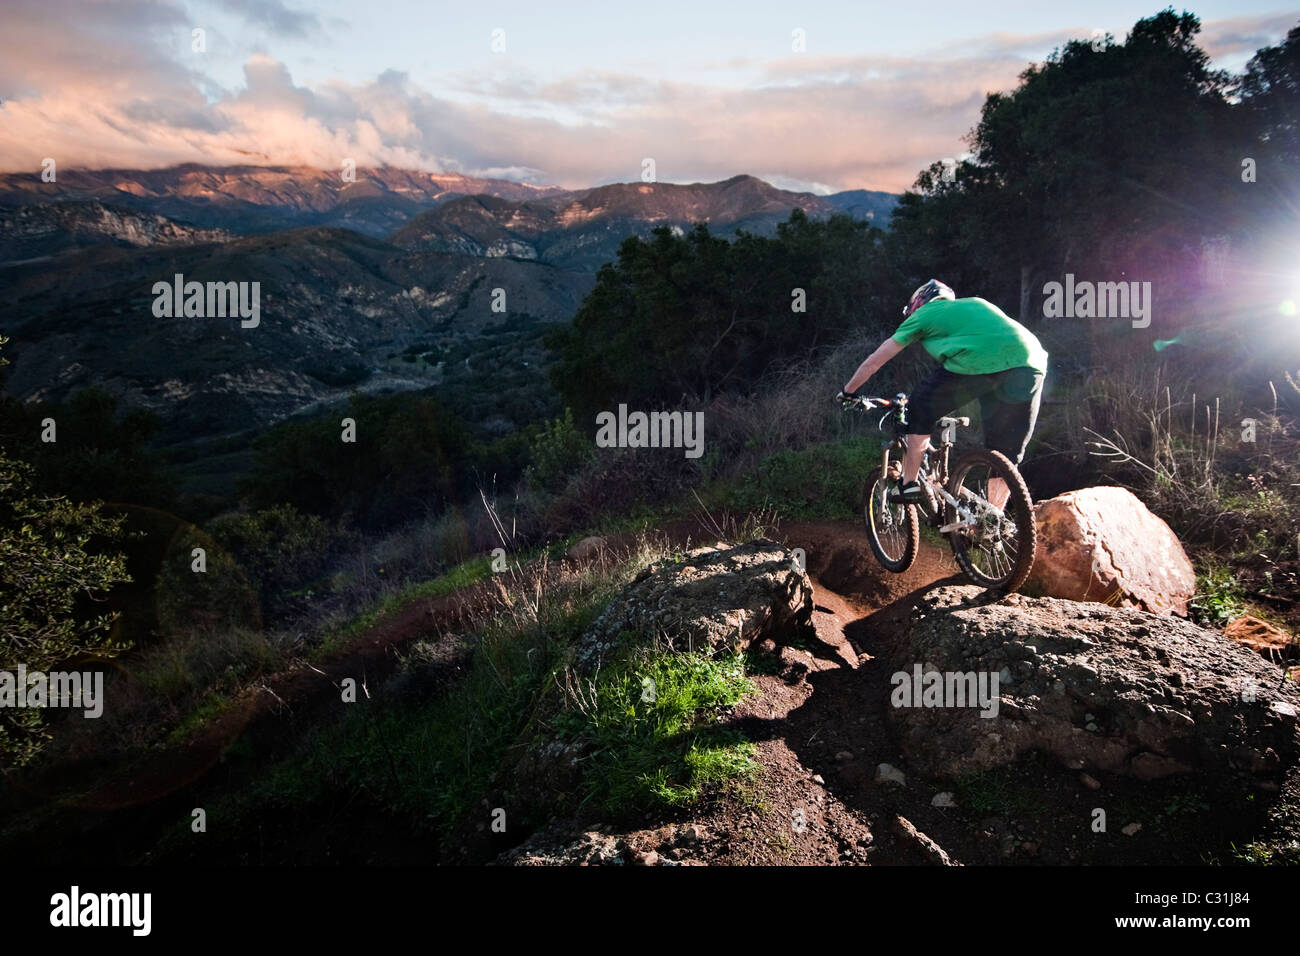 A young man rides his downhill mountain bike on Knapps Castle Trail, surrounded by beautiful scenery in Santa Barbara, - Stock Image